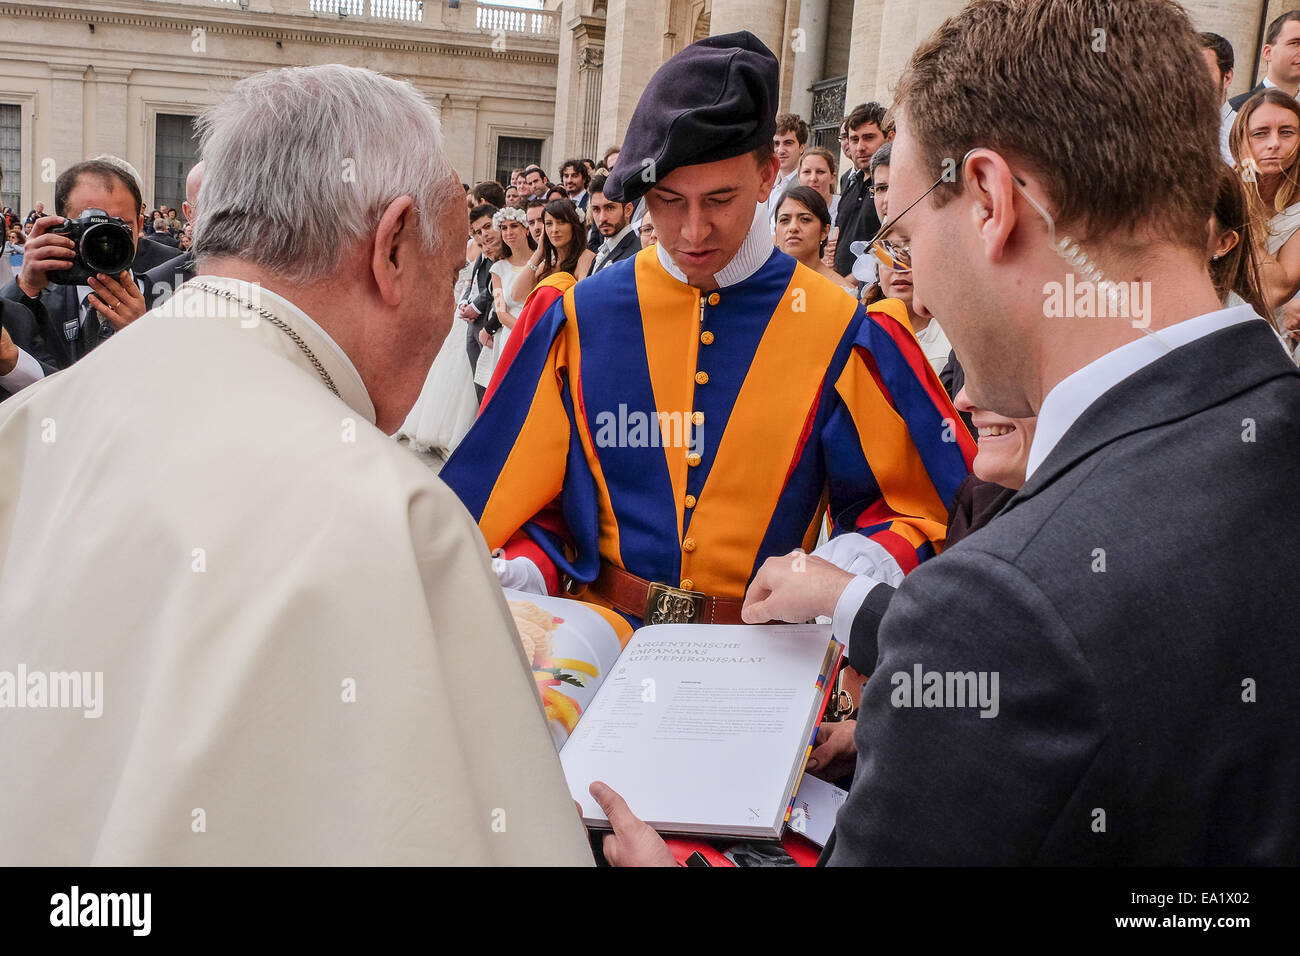 Vatican City, 05th Nov, 2014. Pope Francis, General Audience in St. Peter Square, 05 Nov 2014.David Geisser, the - Stock Image